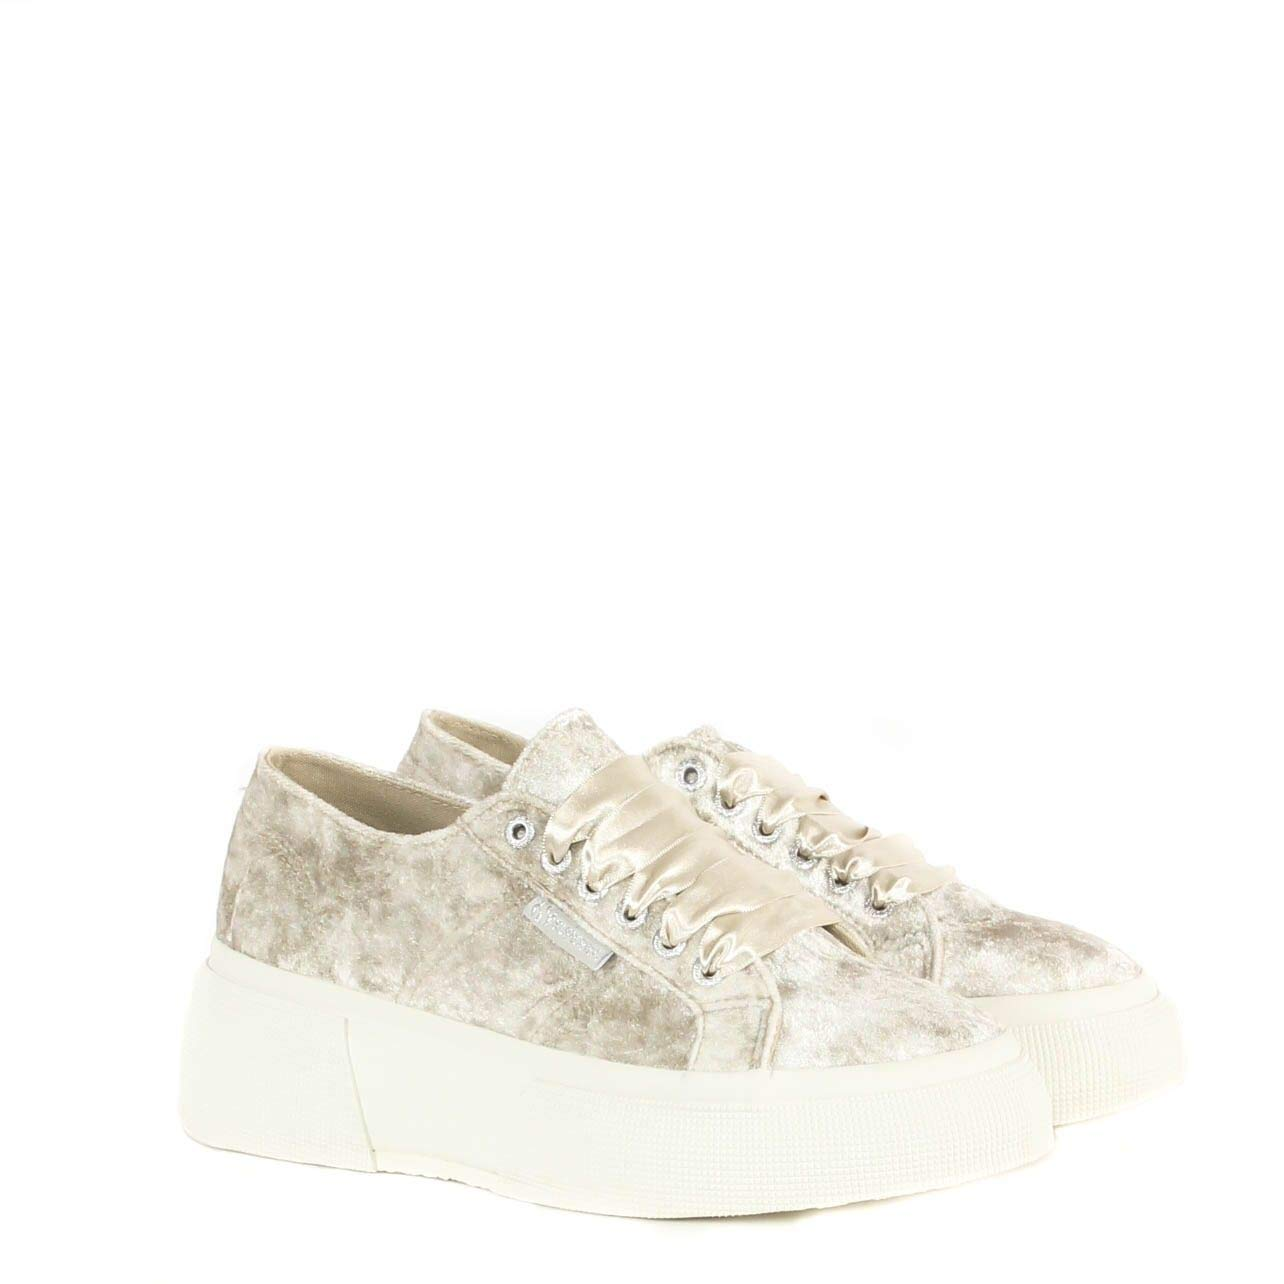 Superga Shining Wrinkled Turnschuhe Winter 2018 Damen